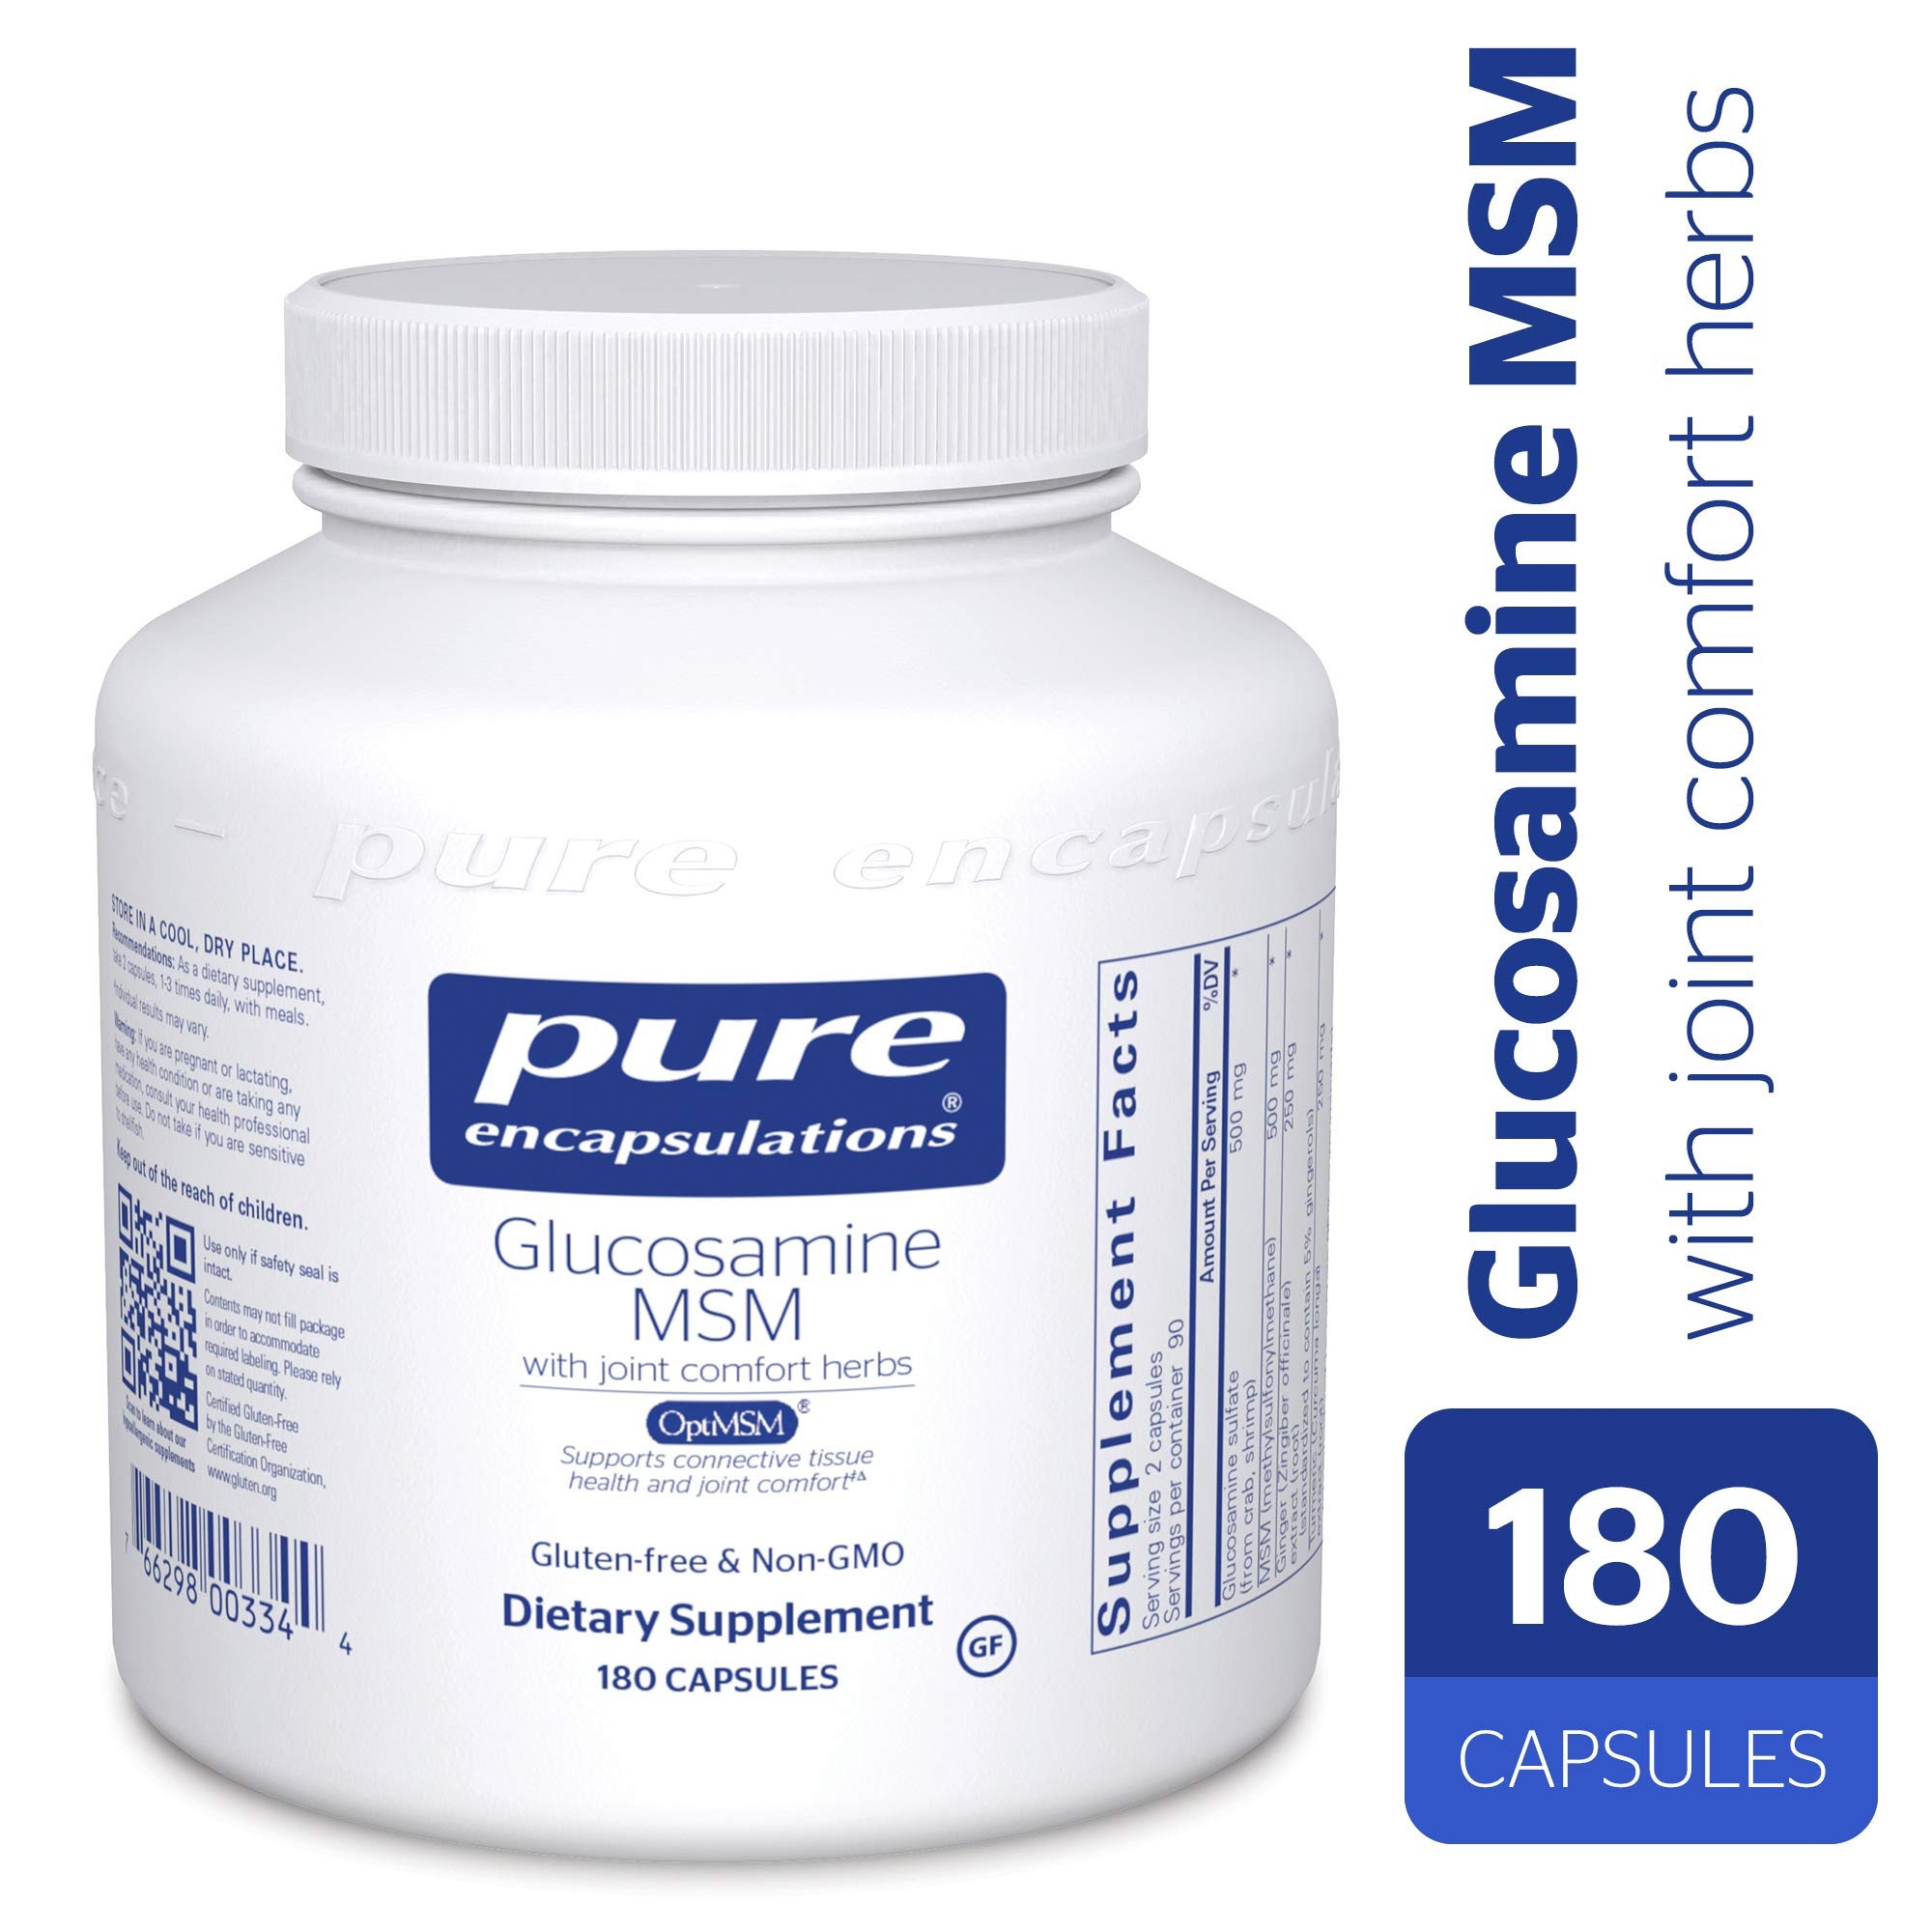 Pure Encapsulations - Glucosamine/MSM - Dietary Supplement Support for Healthy Joint Function and Tissues* - 180 Capsules